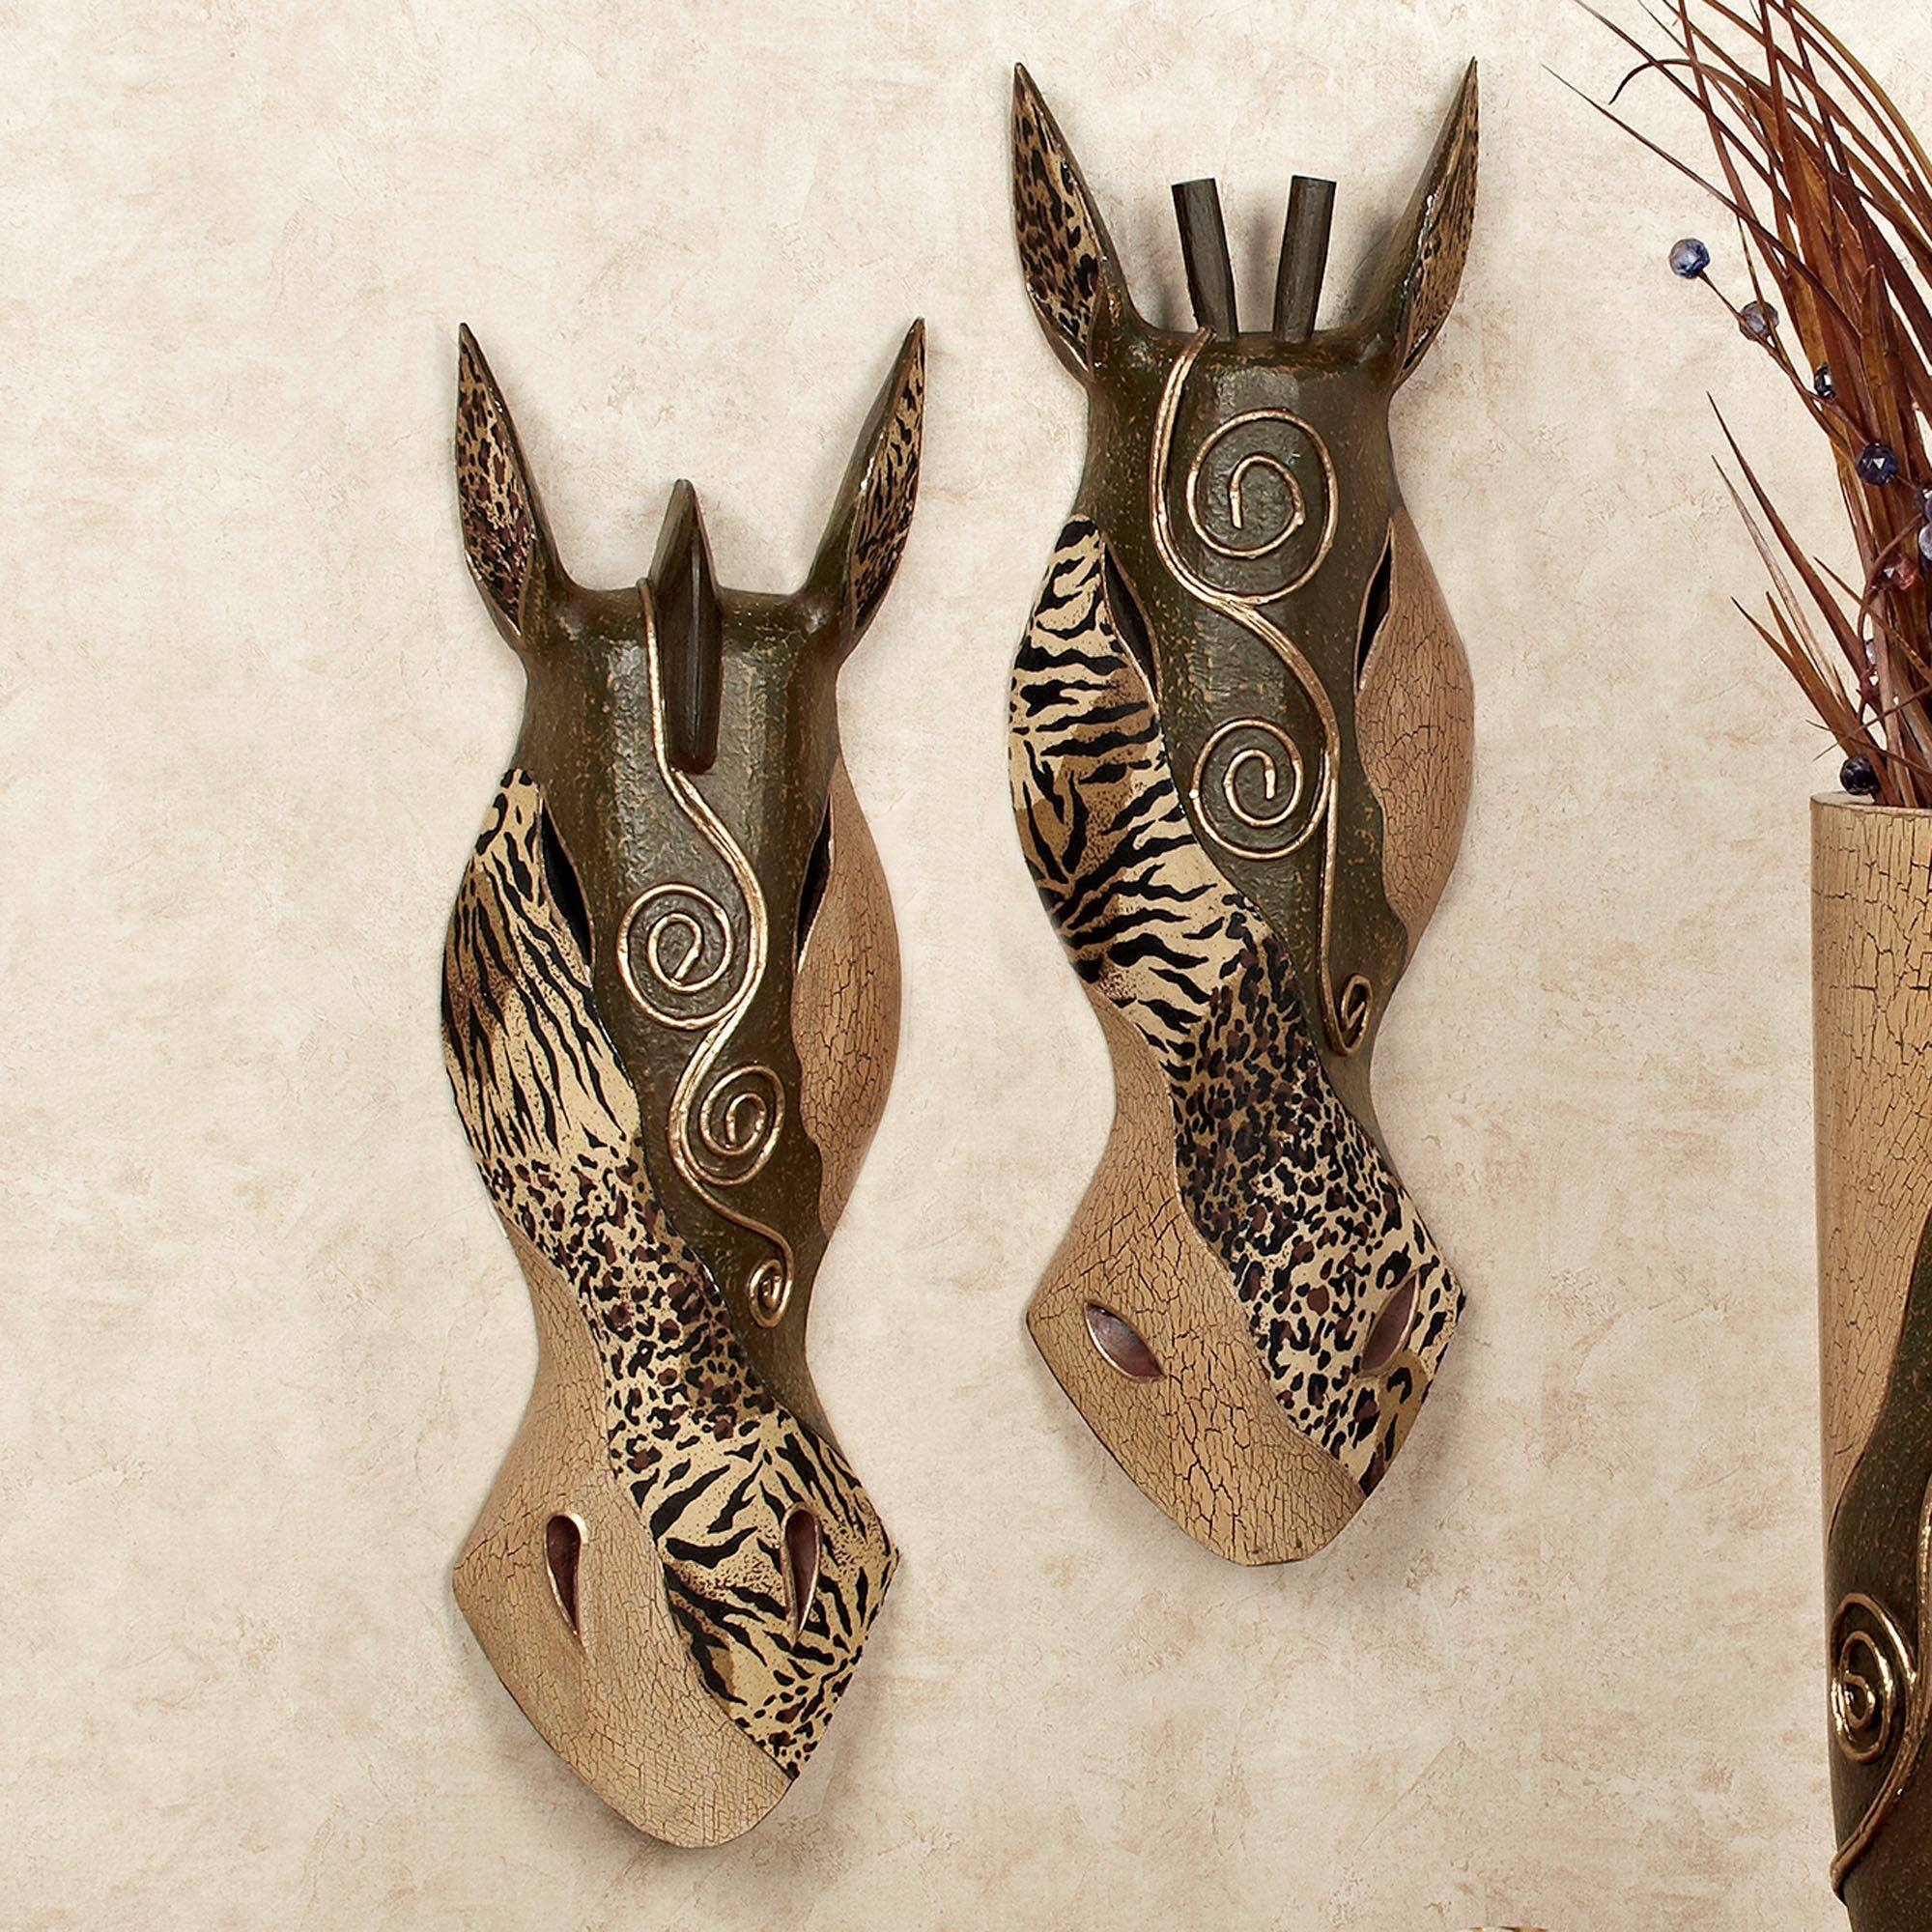 Primal Animal Print Mask Wall Art Set Regarding Most Up To Date Metal Animal Wall Art (View 15 of 20)